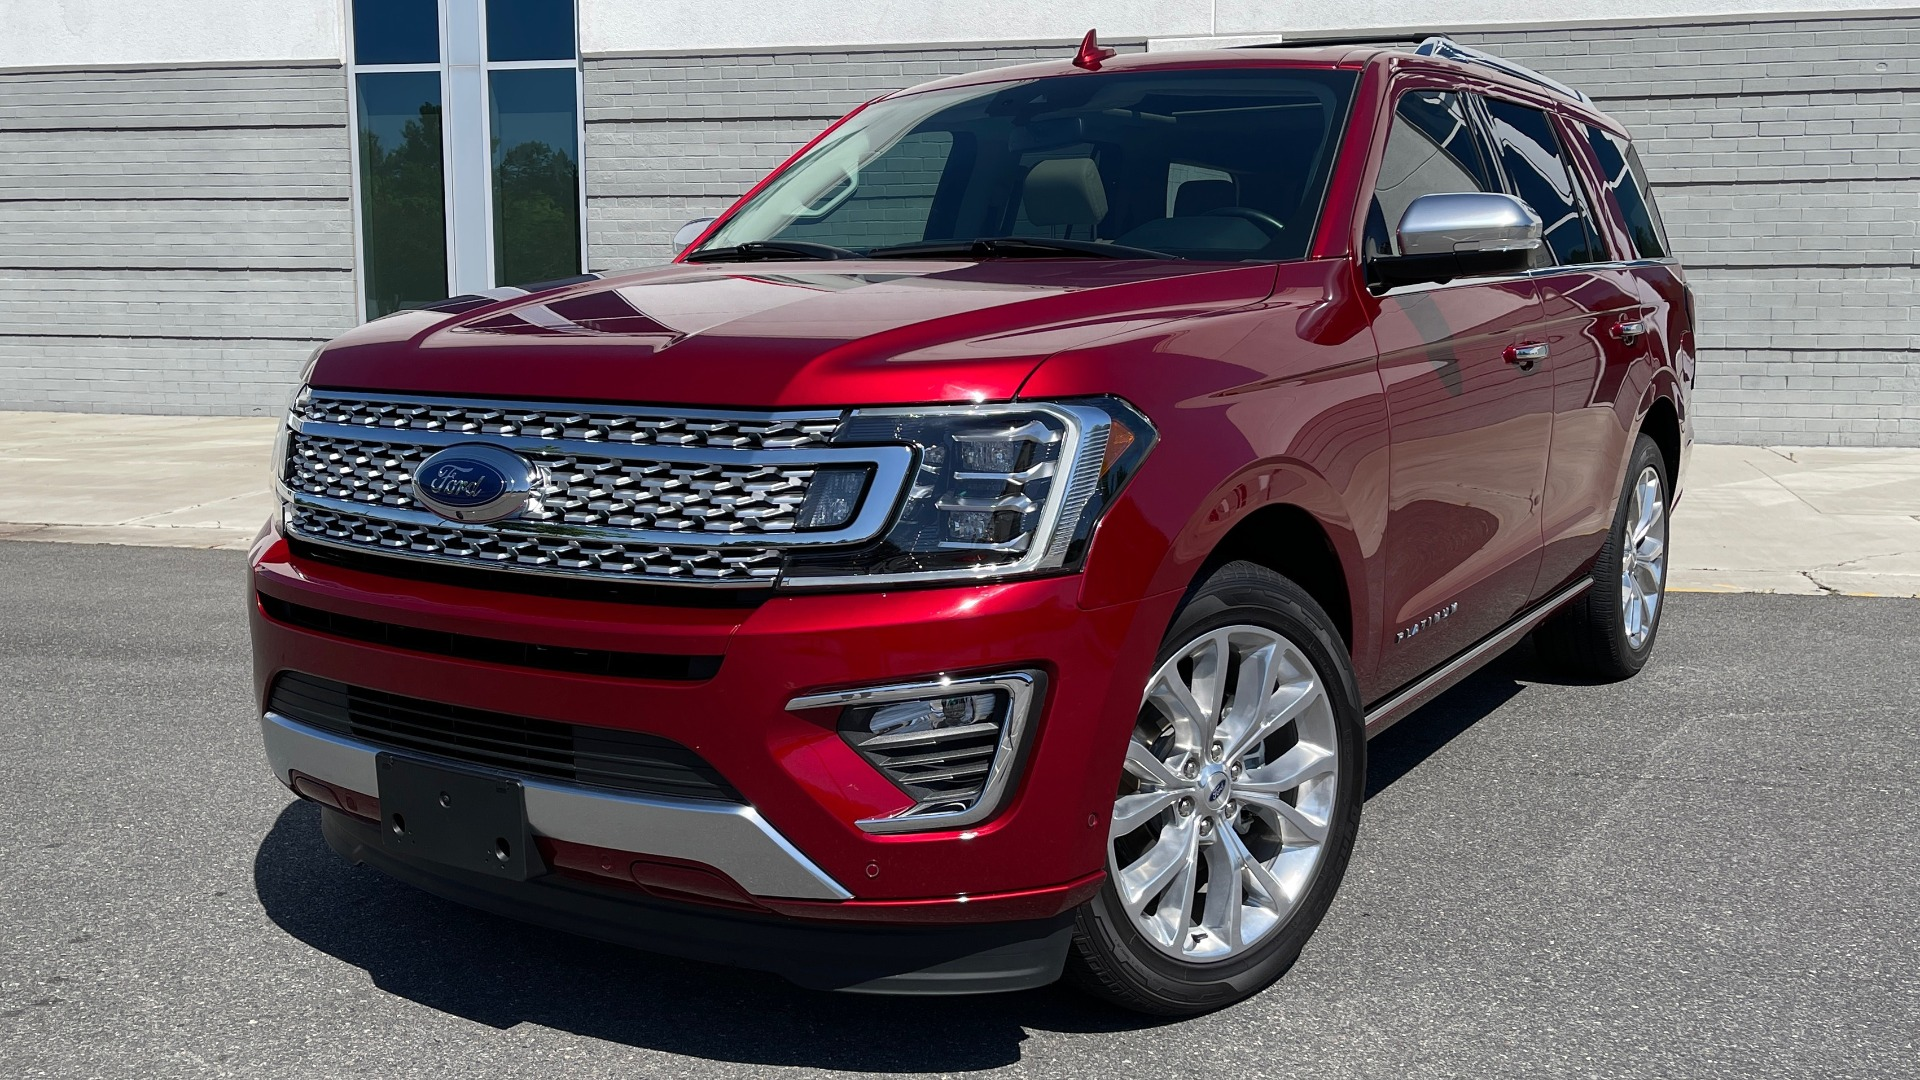 Used 2019 Ford EXPEDITION PLATINUM / 3.5L ECOBOOST / NAV / WIFI / SUNROOF / 3-ROW / REARVIEW for sale Sold at Formula Imports in Charlotte NC 28227 1